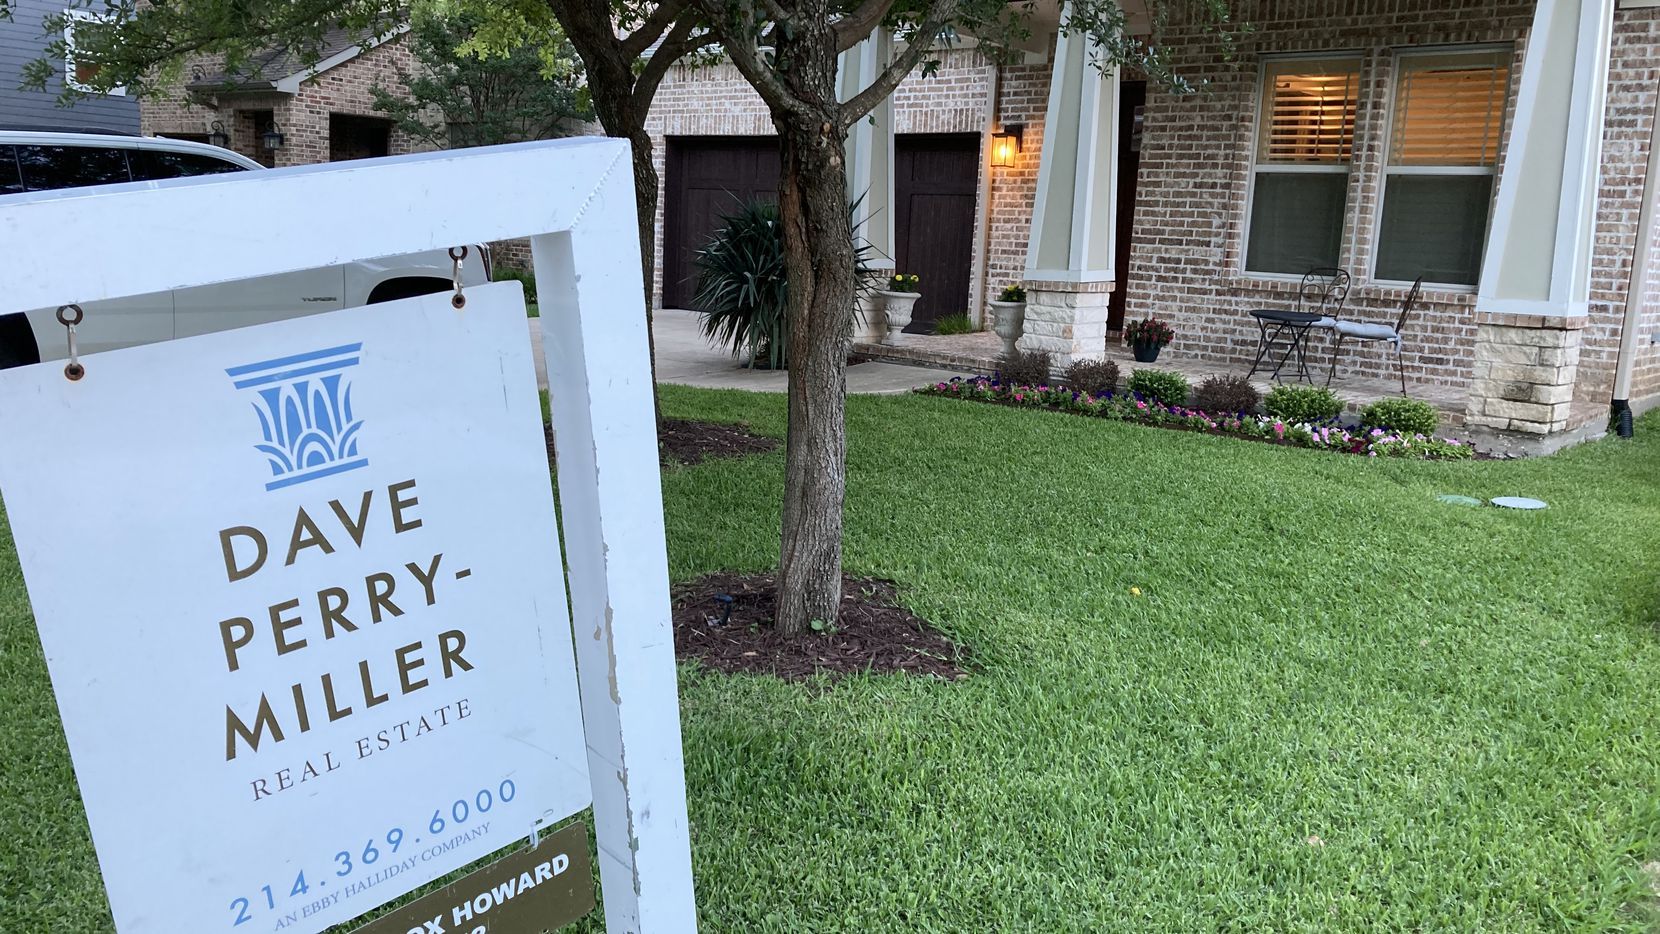 North Texas home prices have shot up by 18% in the last year.